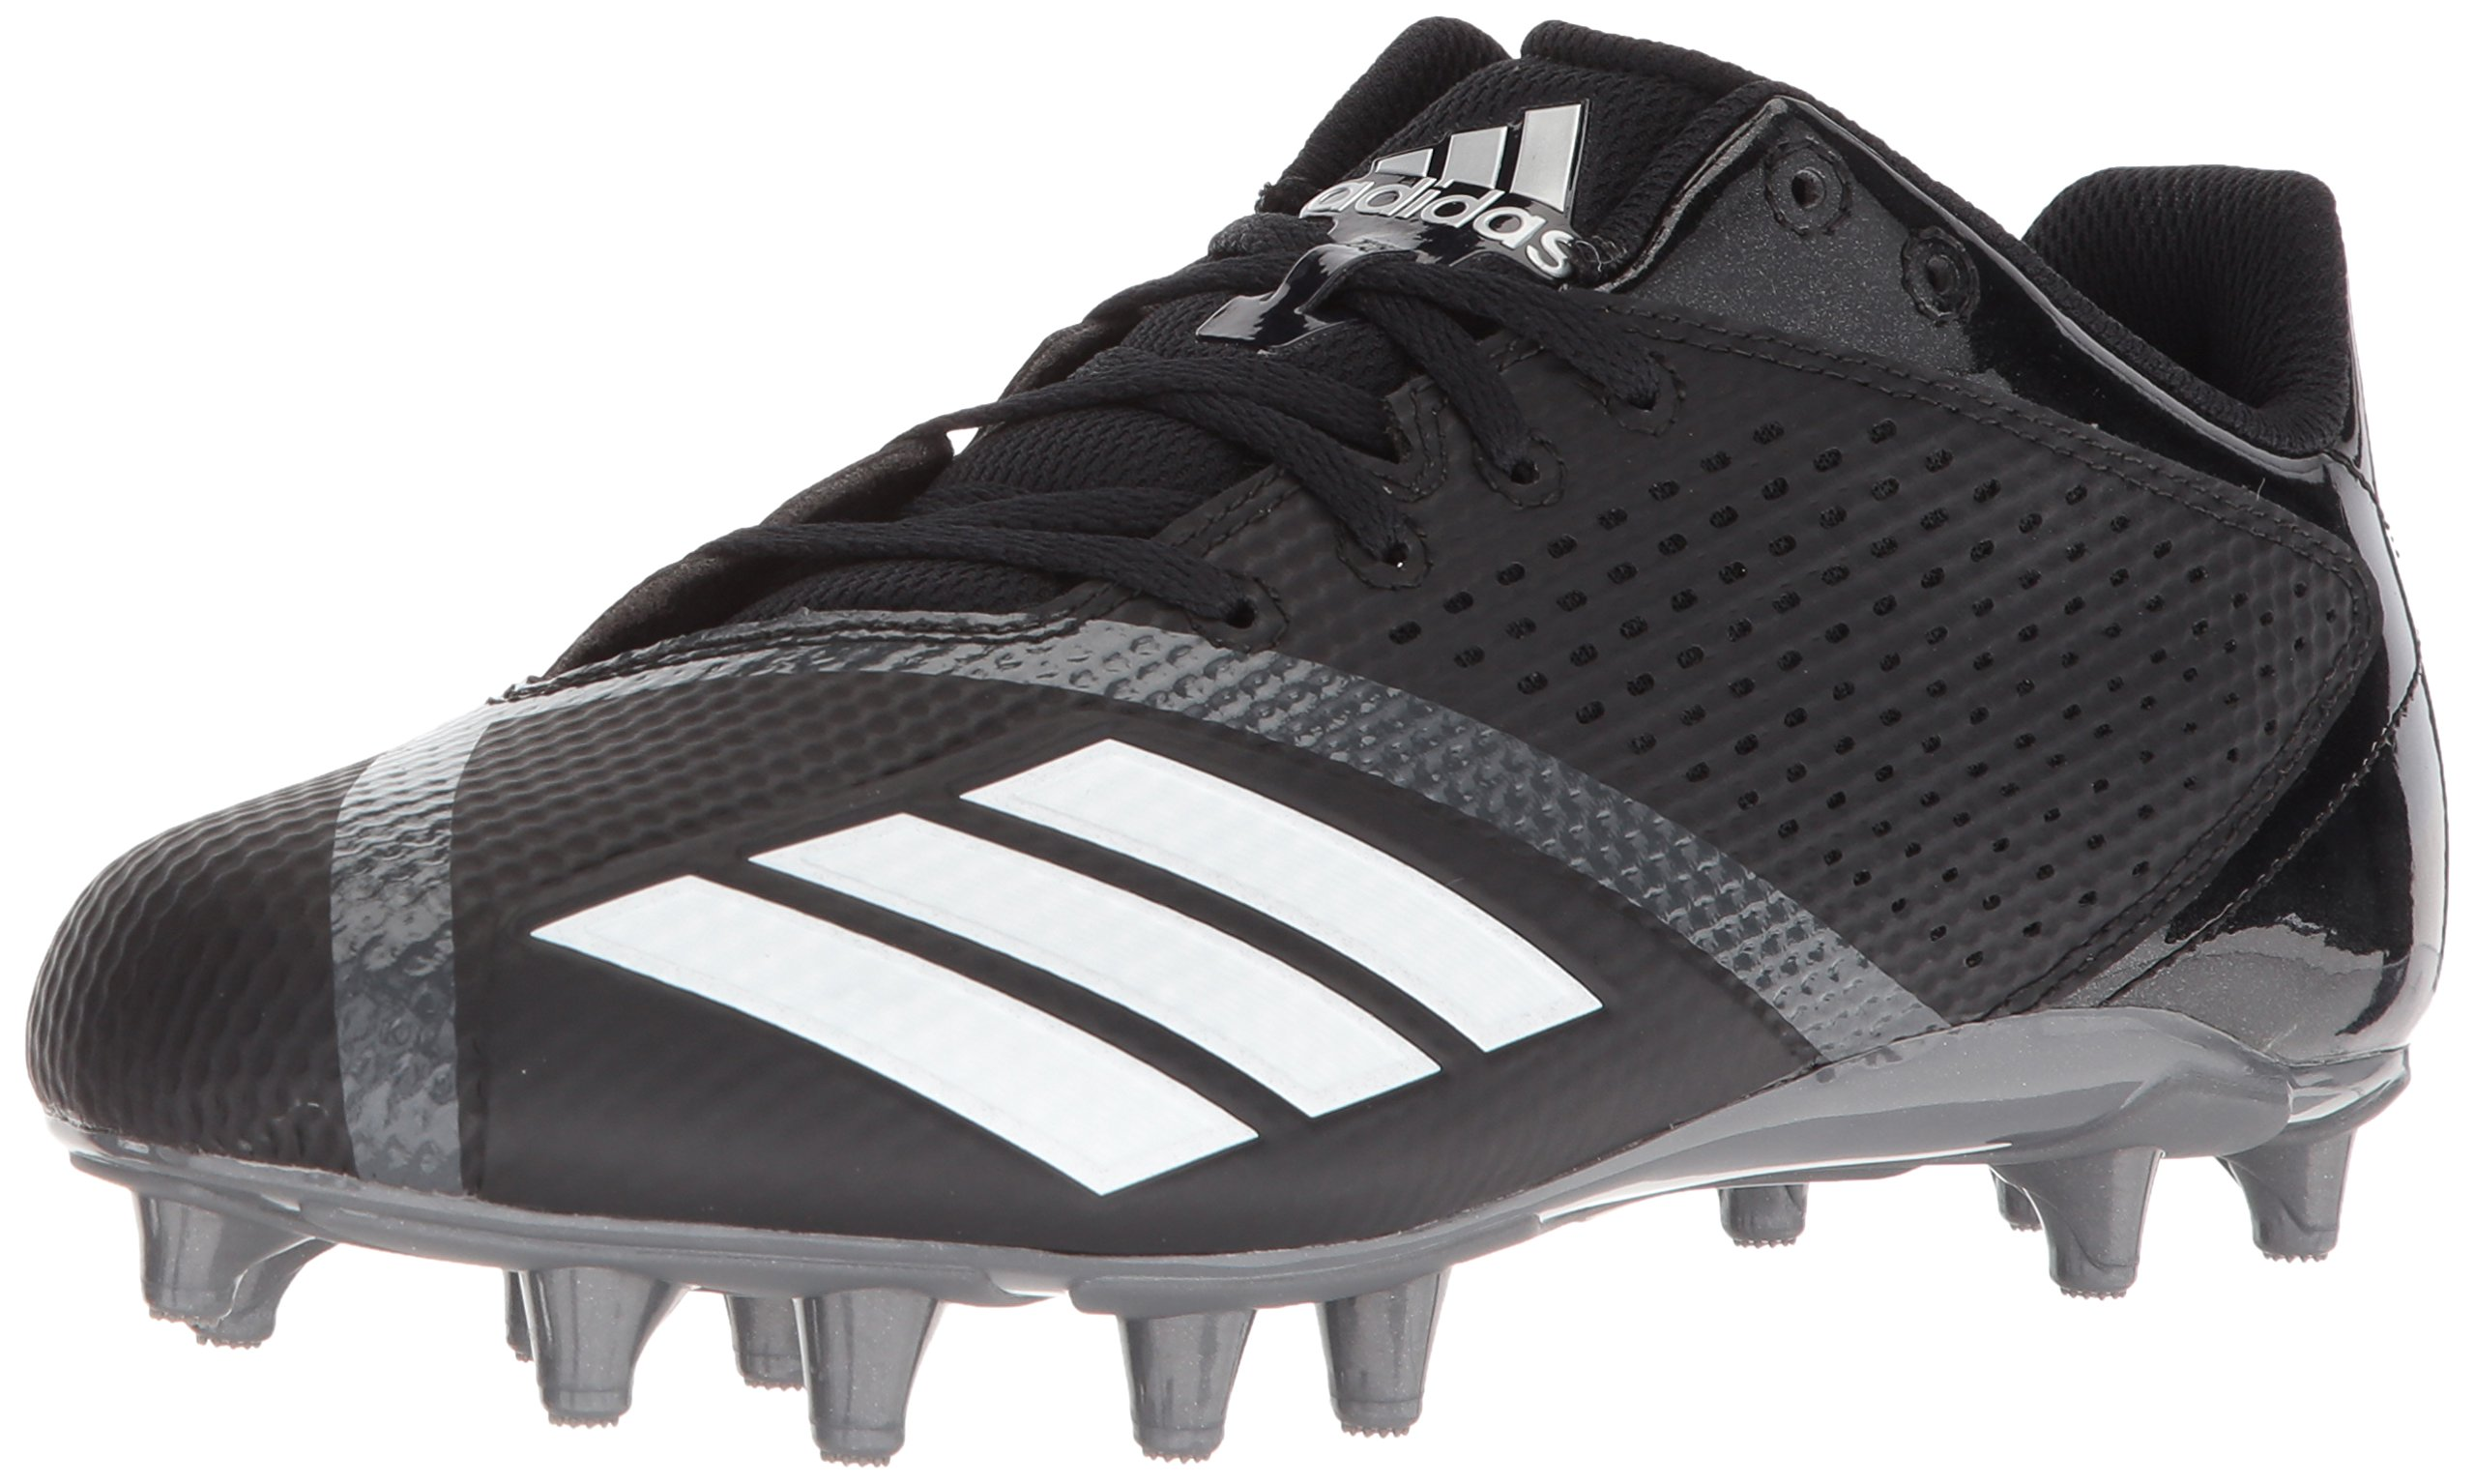 adidas Men's 5.5 Star Football Shoe, Black/White/Night Metallic, 10 M US